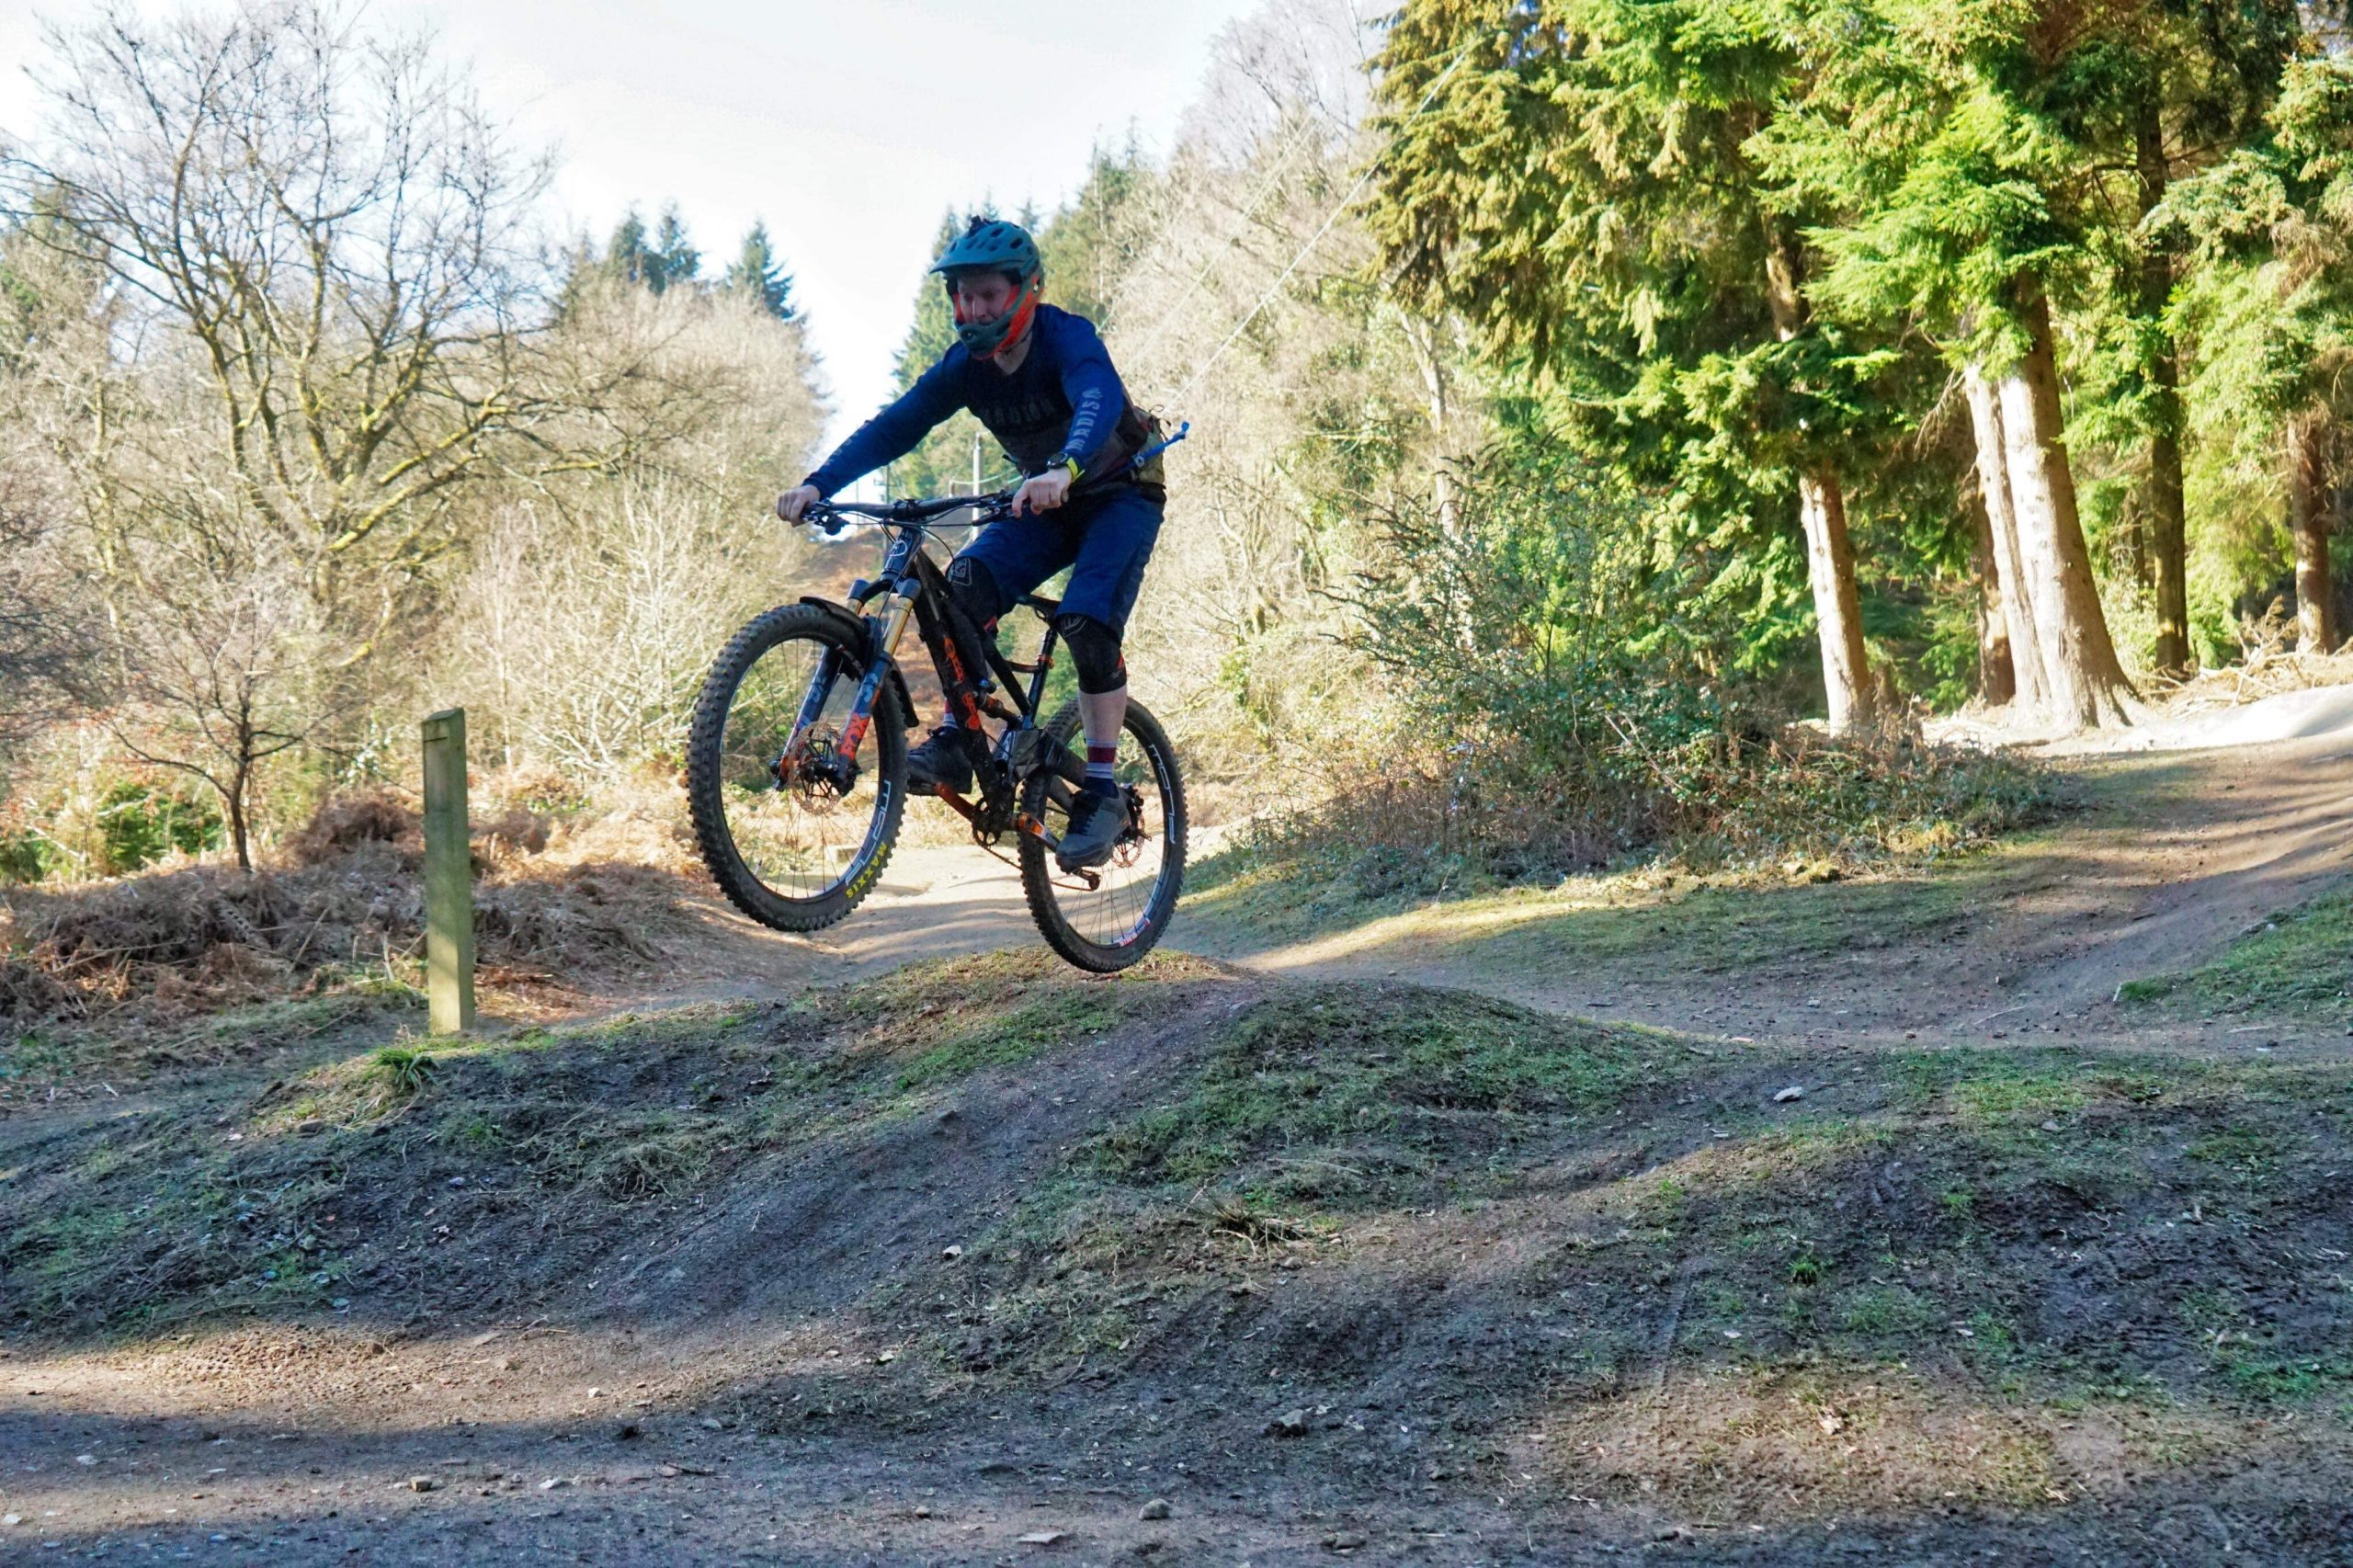 Mountain bike coaching in the Forest of Dean, MTb coaching, Forest of dean, Pedalabikeaway, Skills coaching, Mountain bike skills coaching